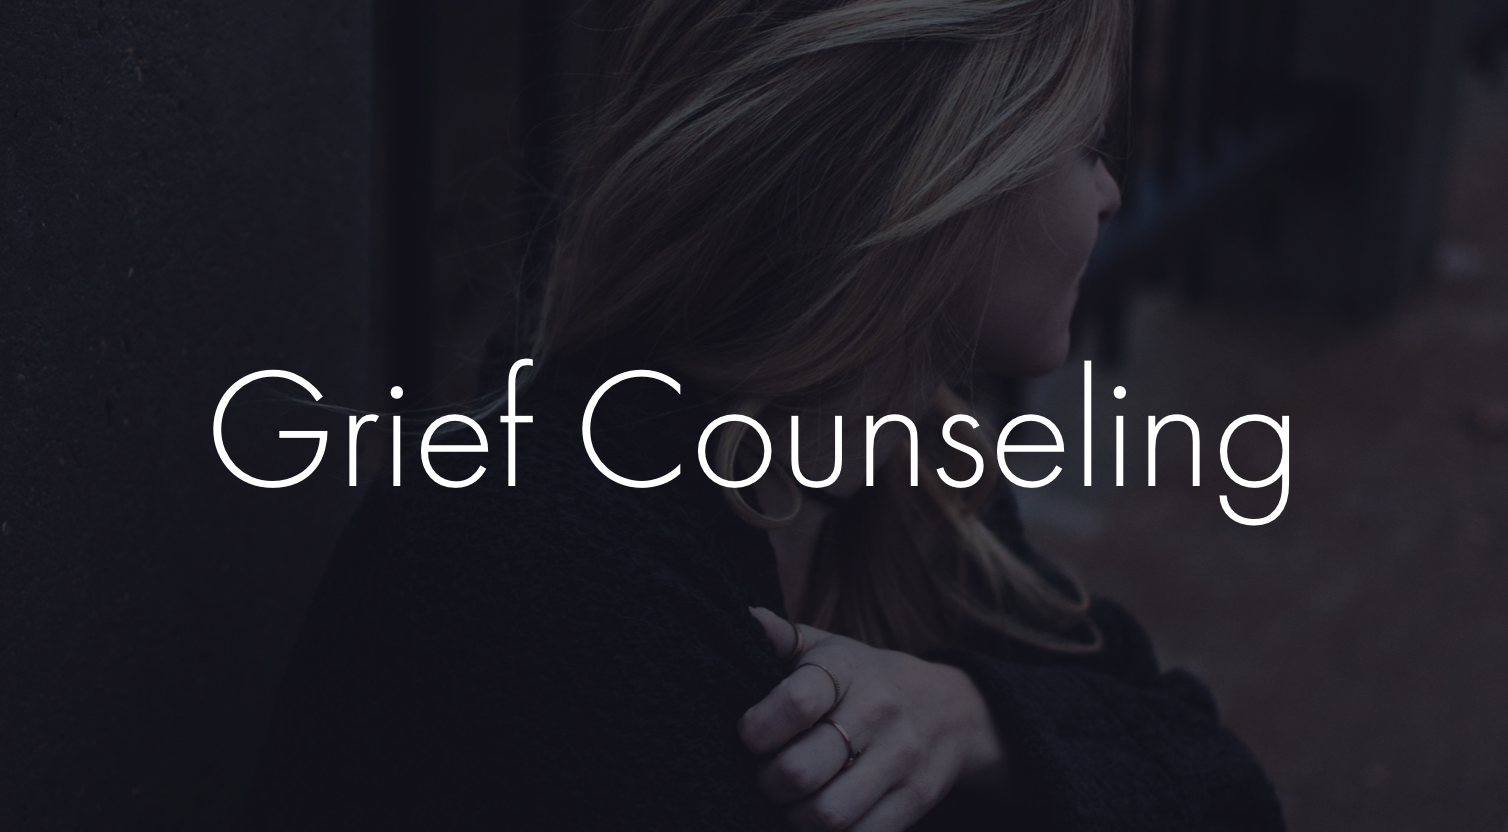 Grief Counseling